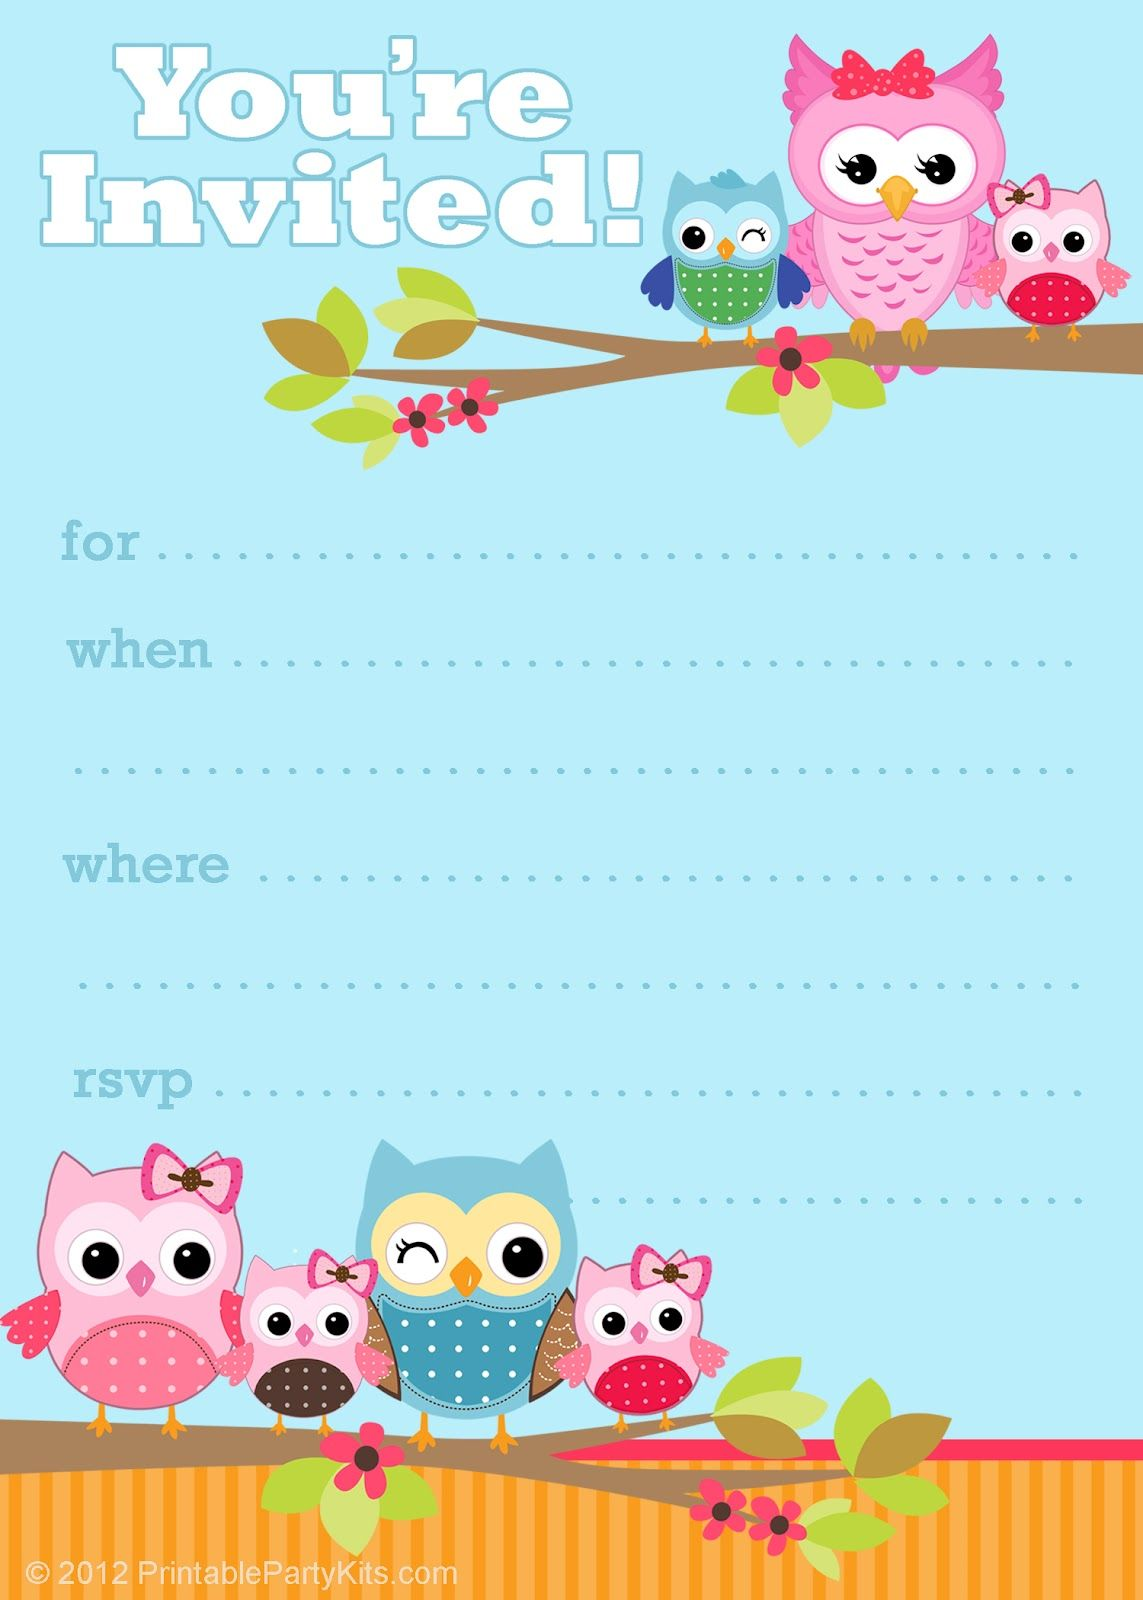 Free printable owl invitations from PrintablePartyInvitations – Free Printable Party Invitations for Kids Birthday Parties